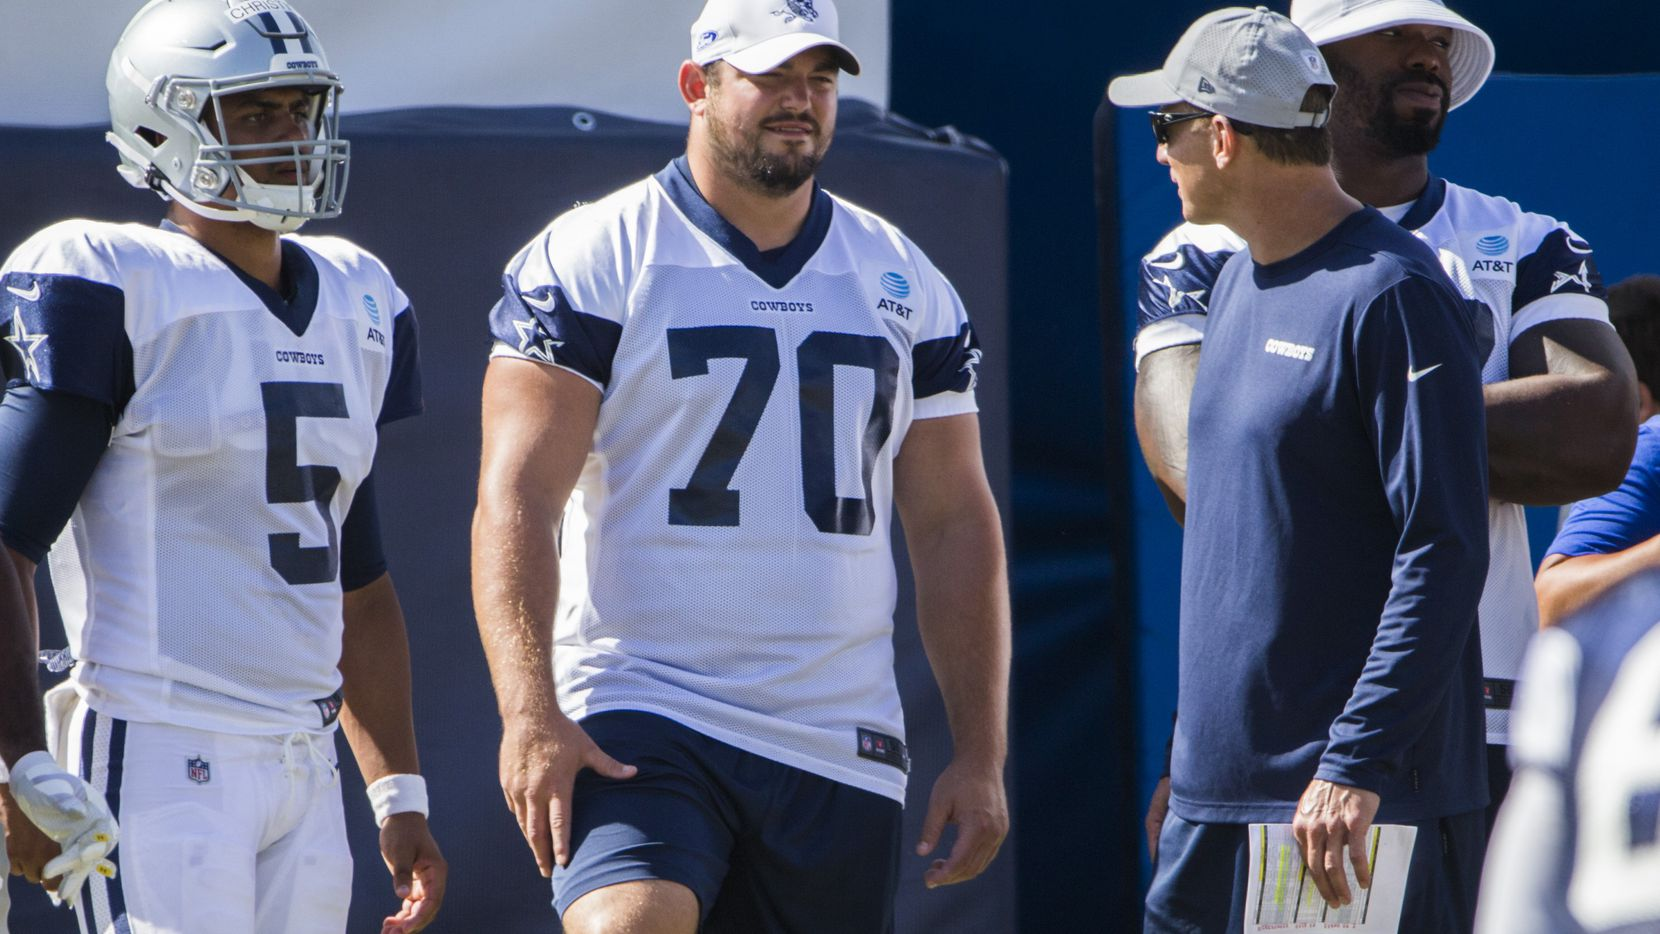 Dallas Cowboys backup quarterback Taryn Christian (5), offensive guard Zack Martin (70) and offensive tackle Tyron Smith (77) stand on the sideline during an afternoon practice at training camp in Oxnard, California on Saturday, August 3, 2019. Smith was out for a minor back injury. (Ashley Landis/The Dallas Morning News)